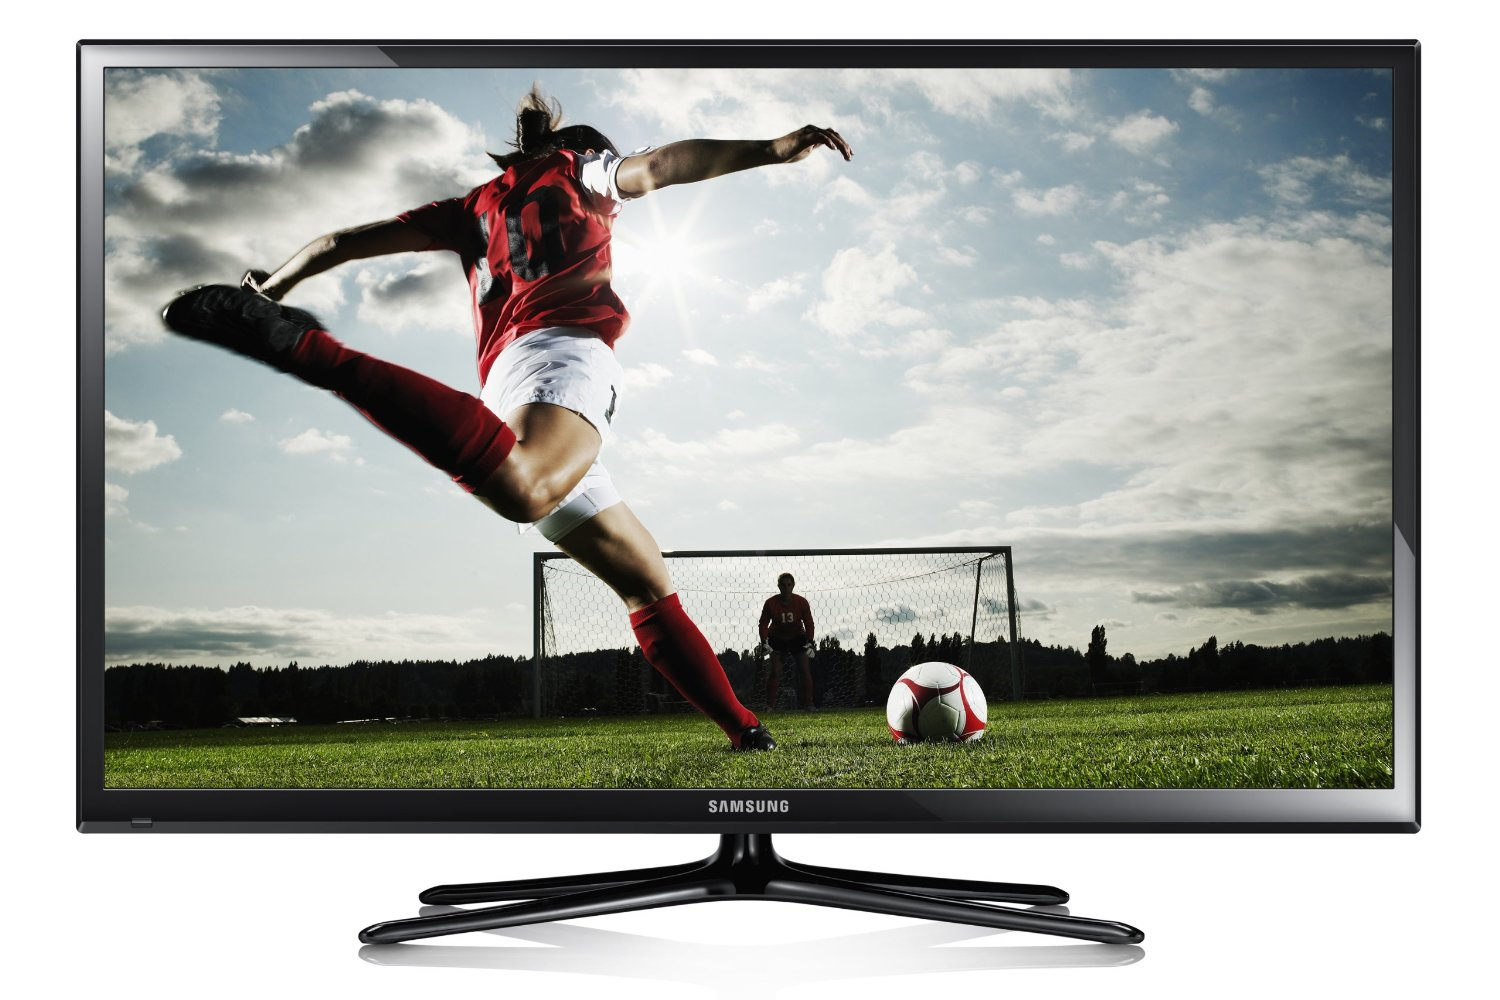 Samsung Flat Screen Tv Price From The Wirecutter The Best Tv You Can Buy Ars Technica